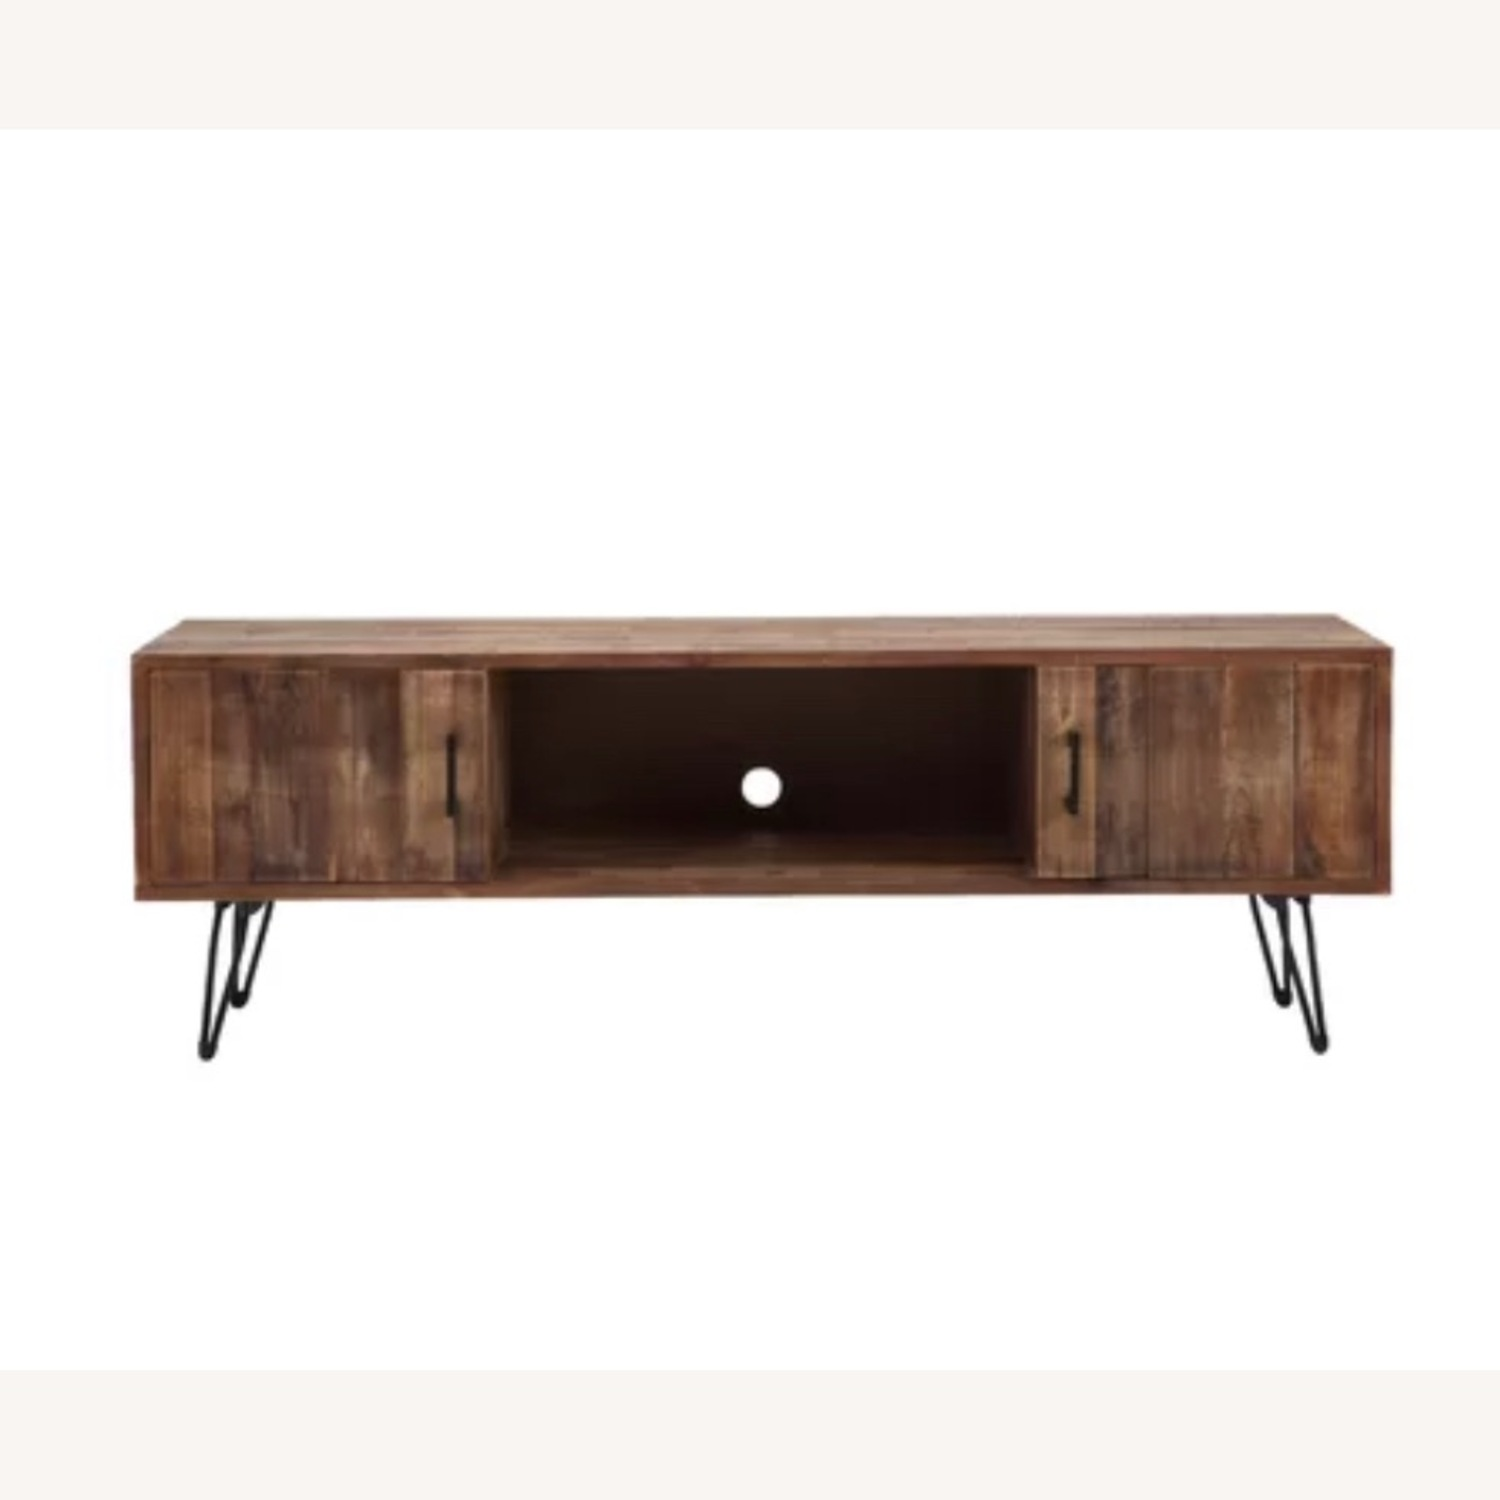 Wayfair Adger Solid Wood TV Stand - image-0